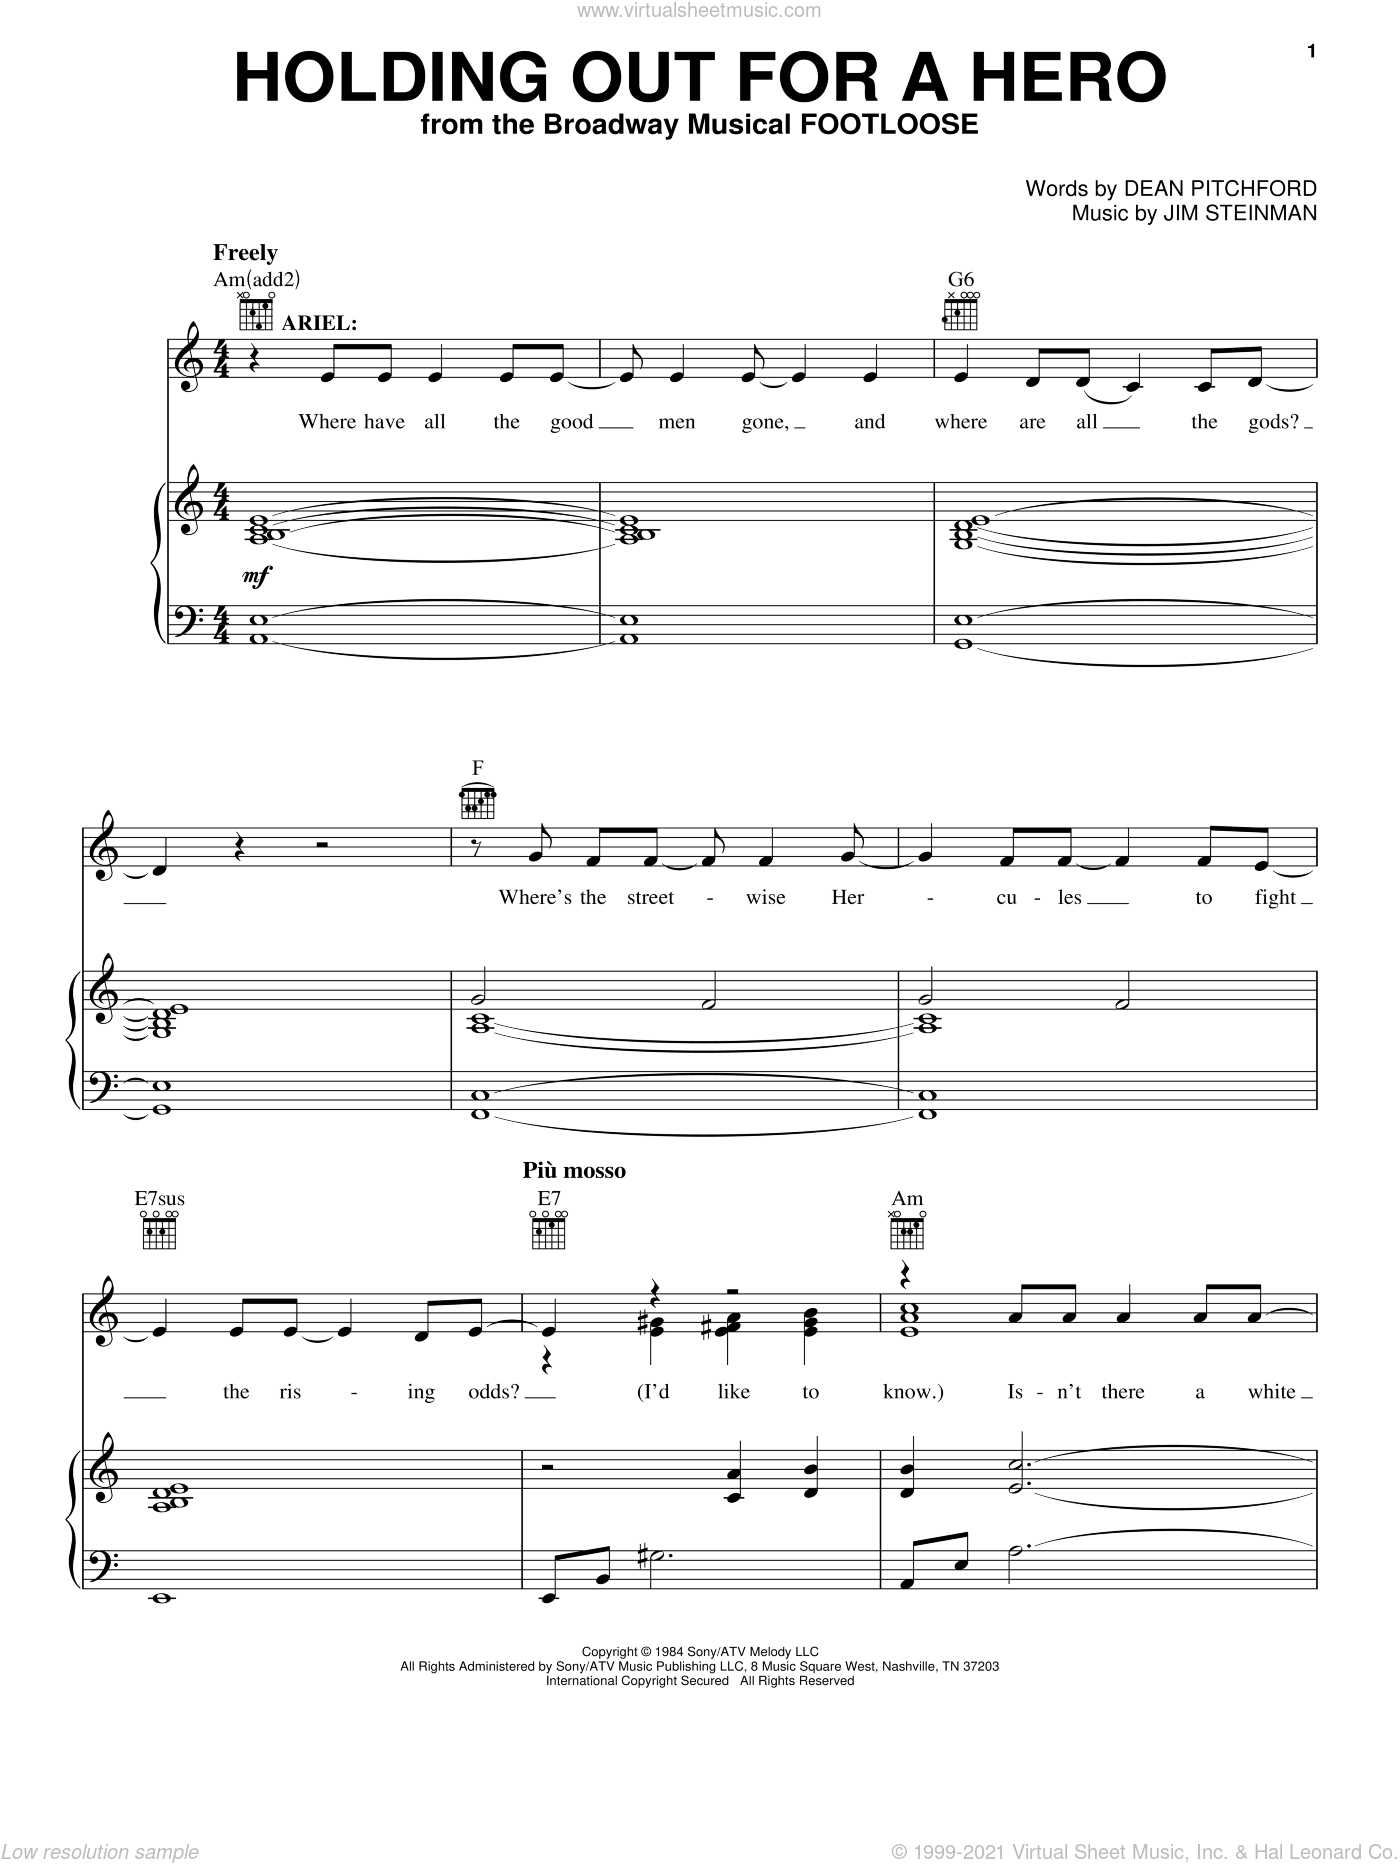 Holding Out For A Hero sheet music for voice, piano or guitar by Jim Steinman